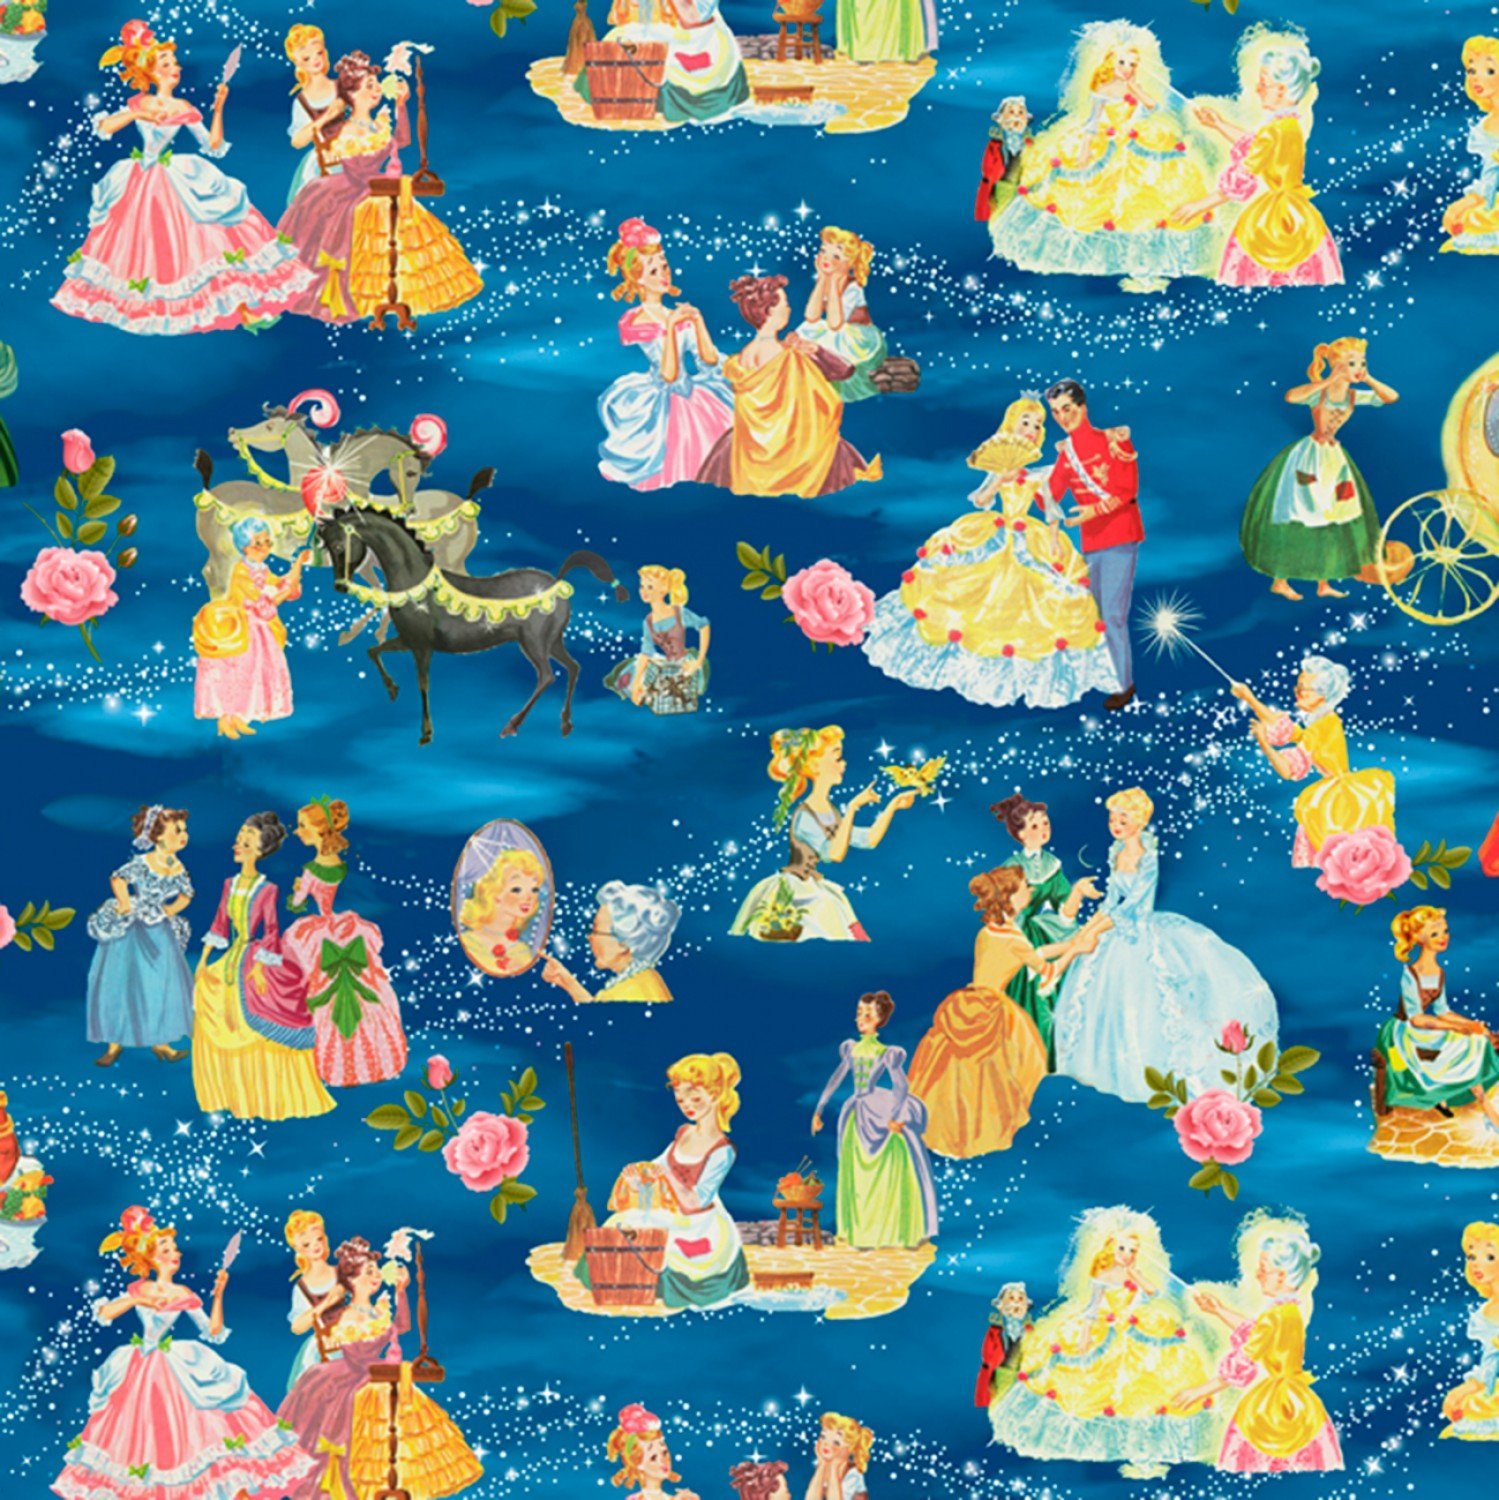 Cinderella's Tale Children's Fabric Yardage